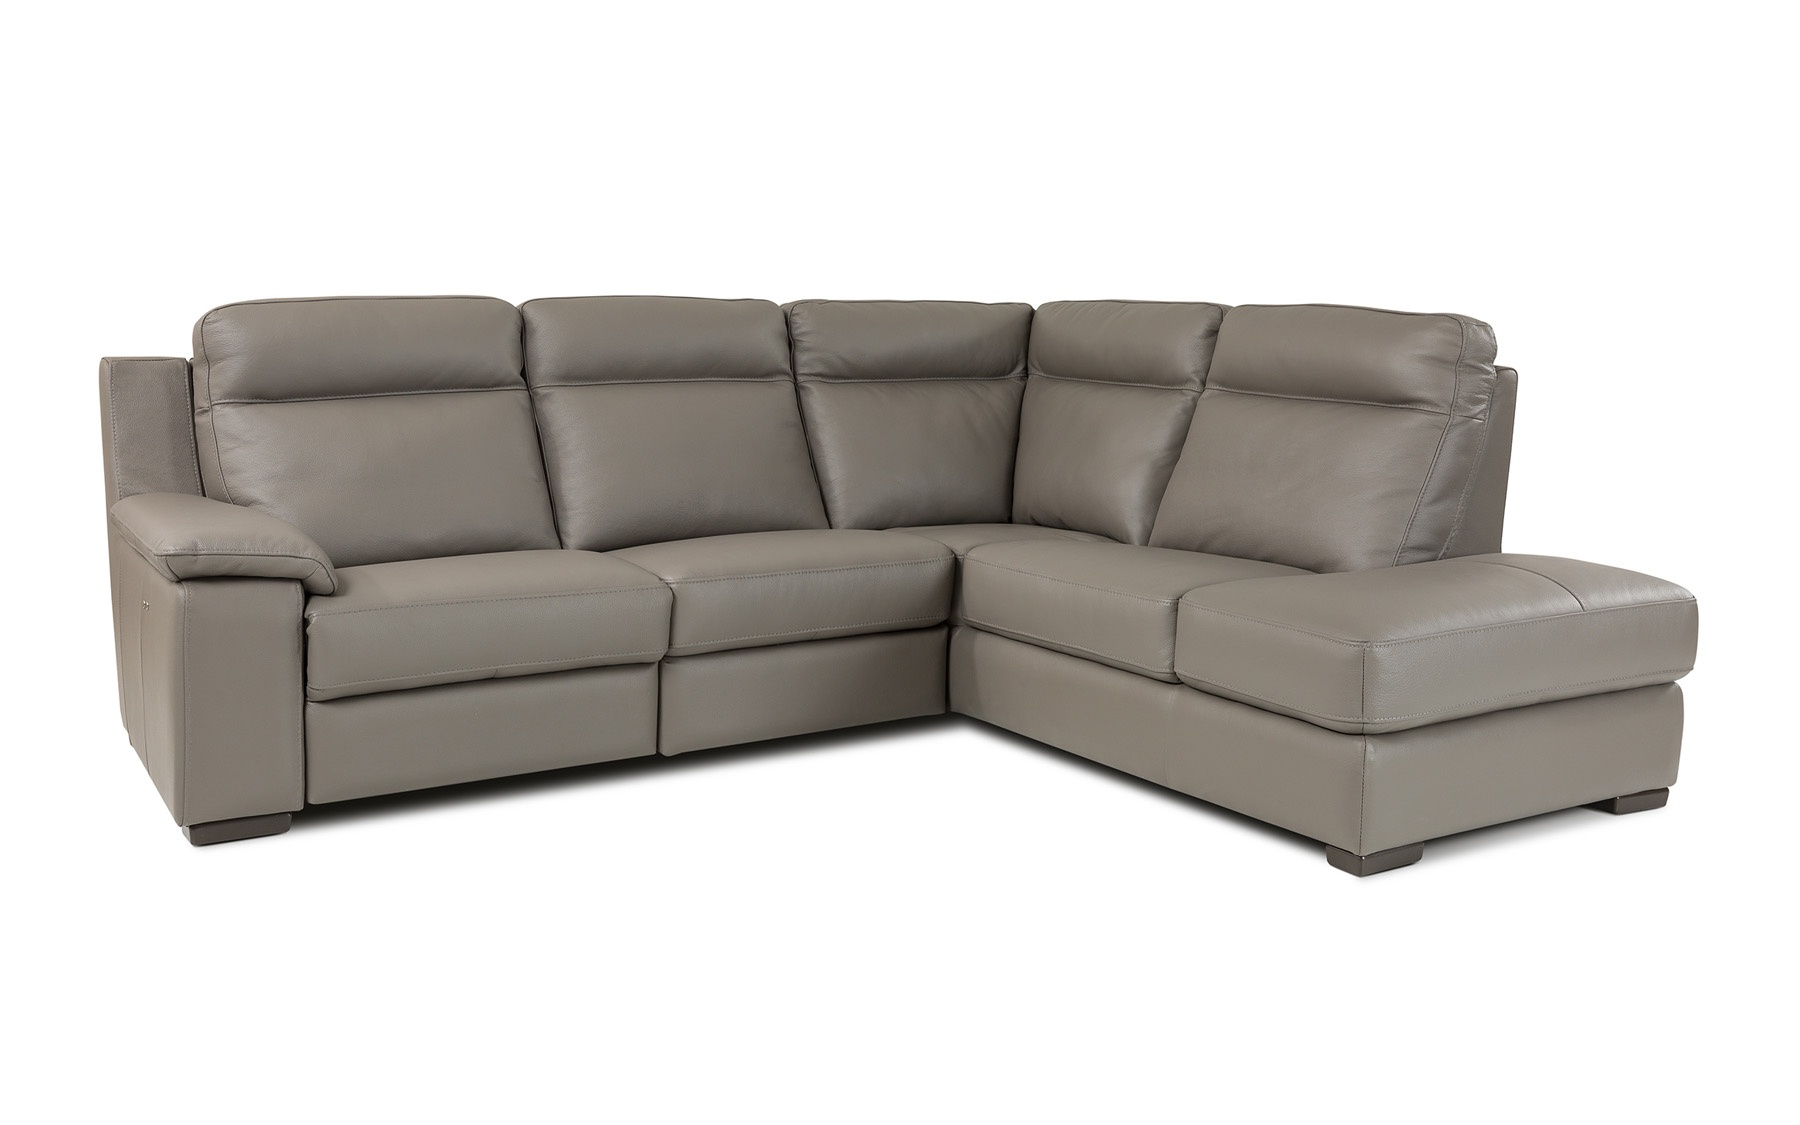 Canap composable inclinable cuir 881 composables for Canape composable